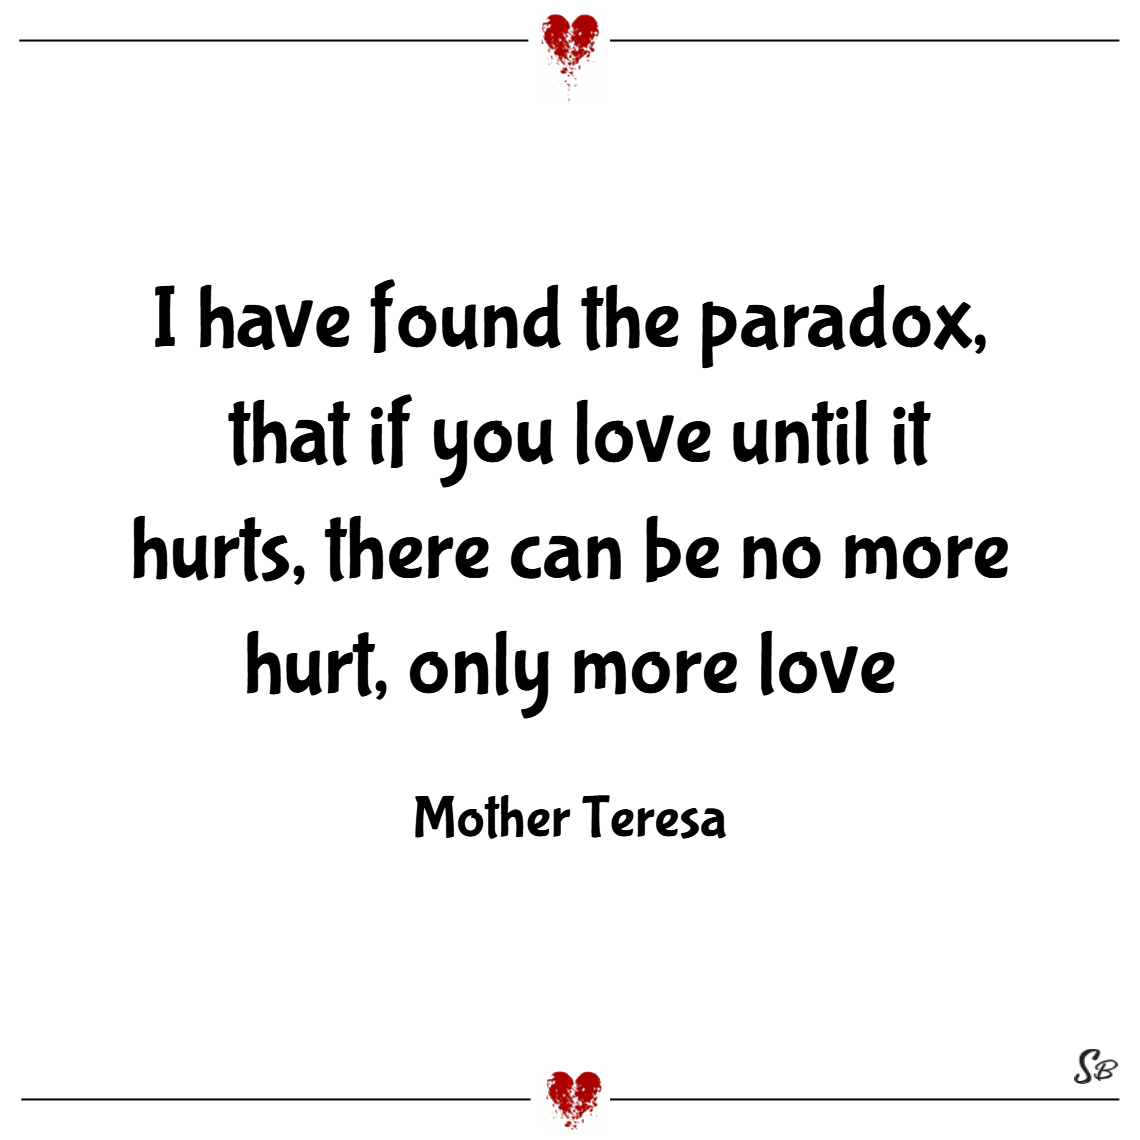 I have found the paradox that if you love until it hurts there can